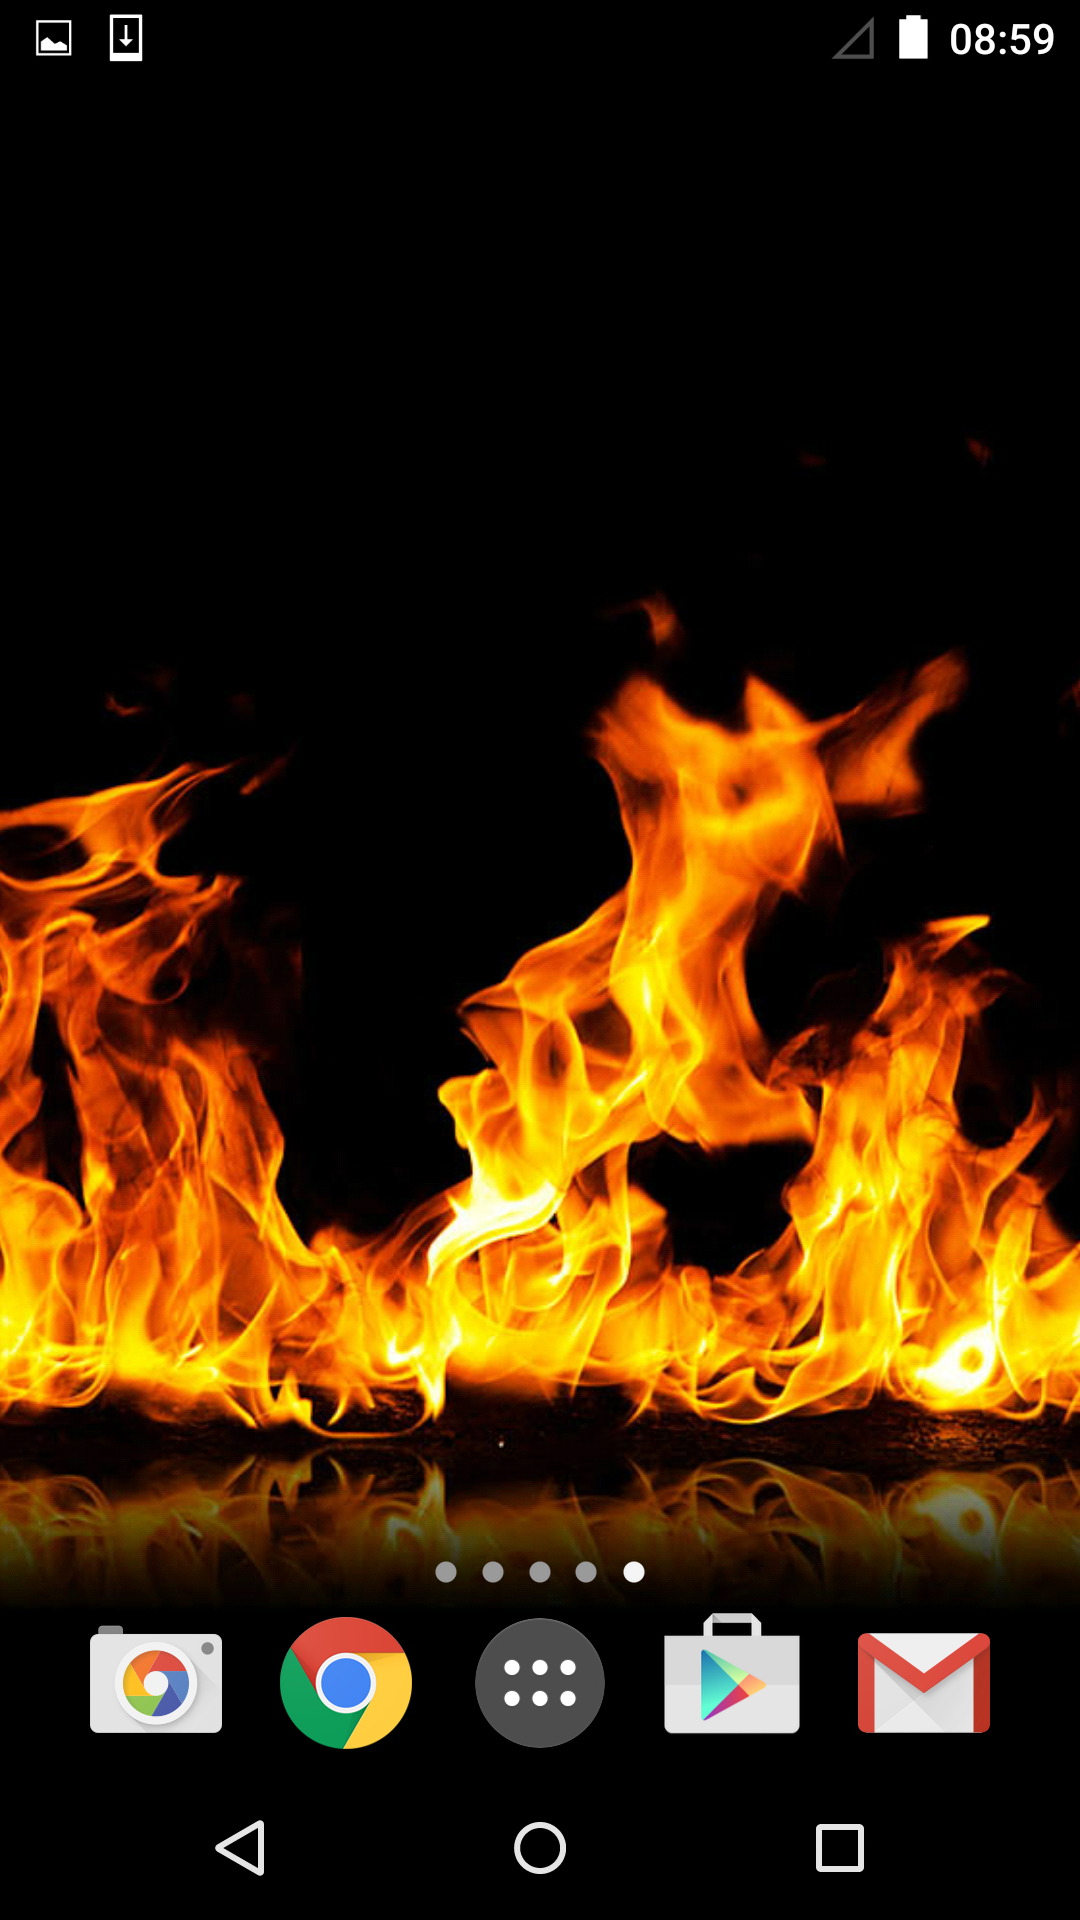 Fire Live Wallpaper Apk